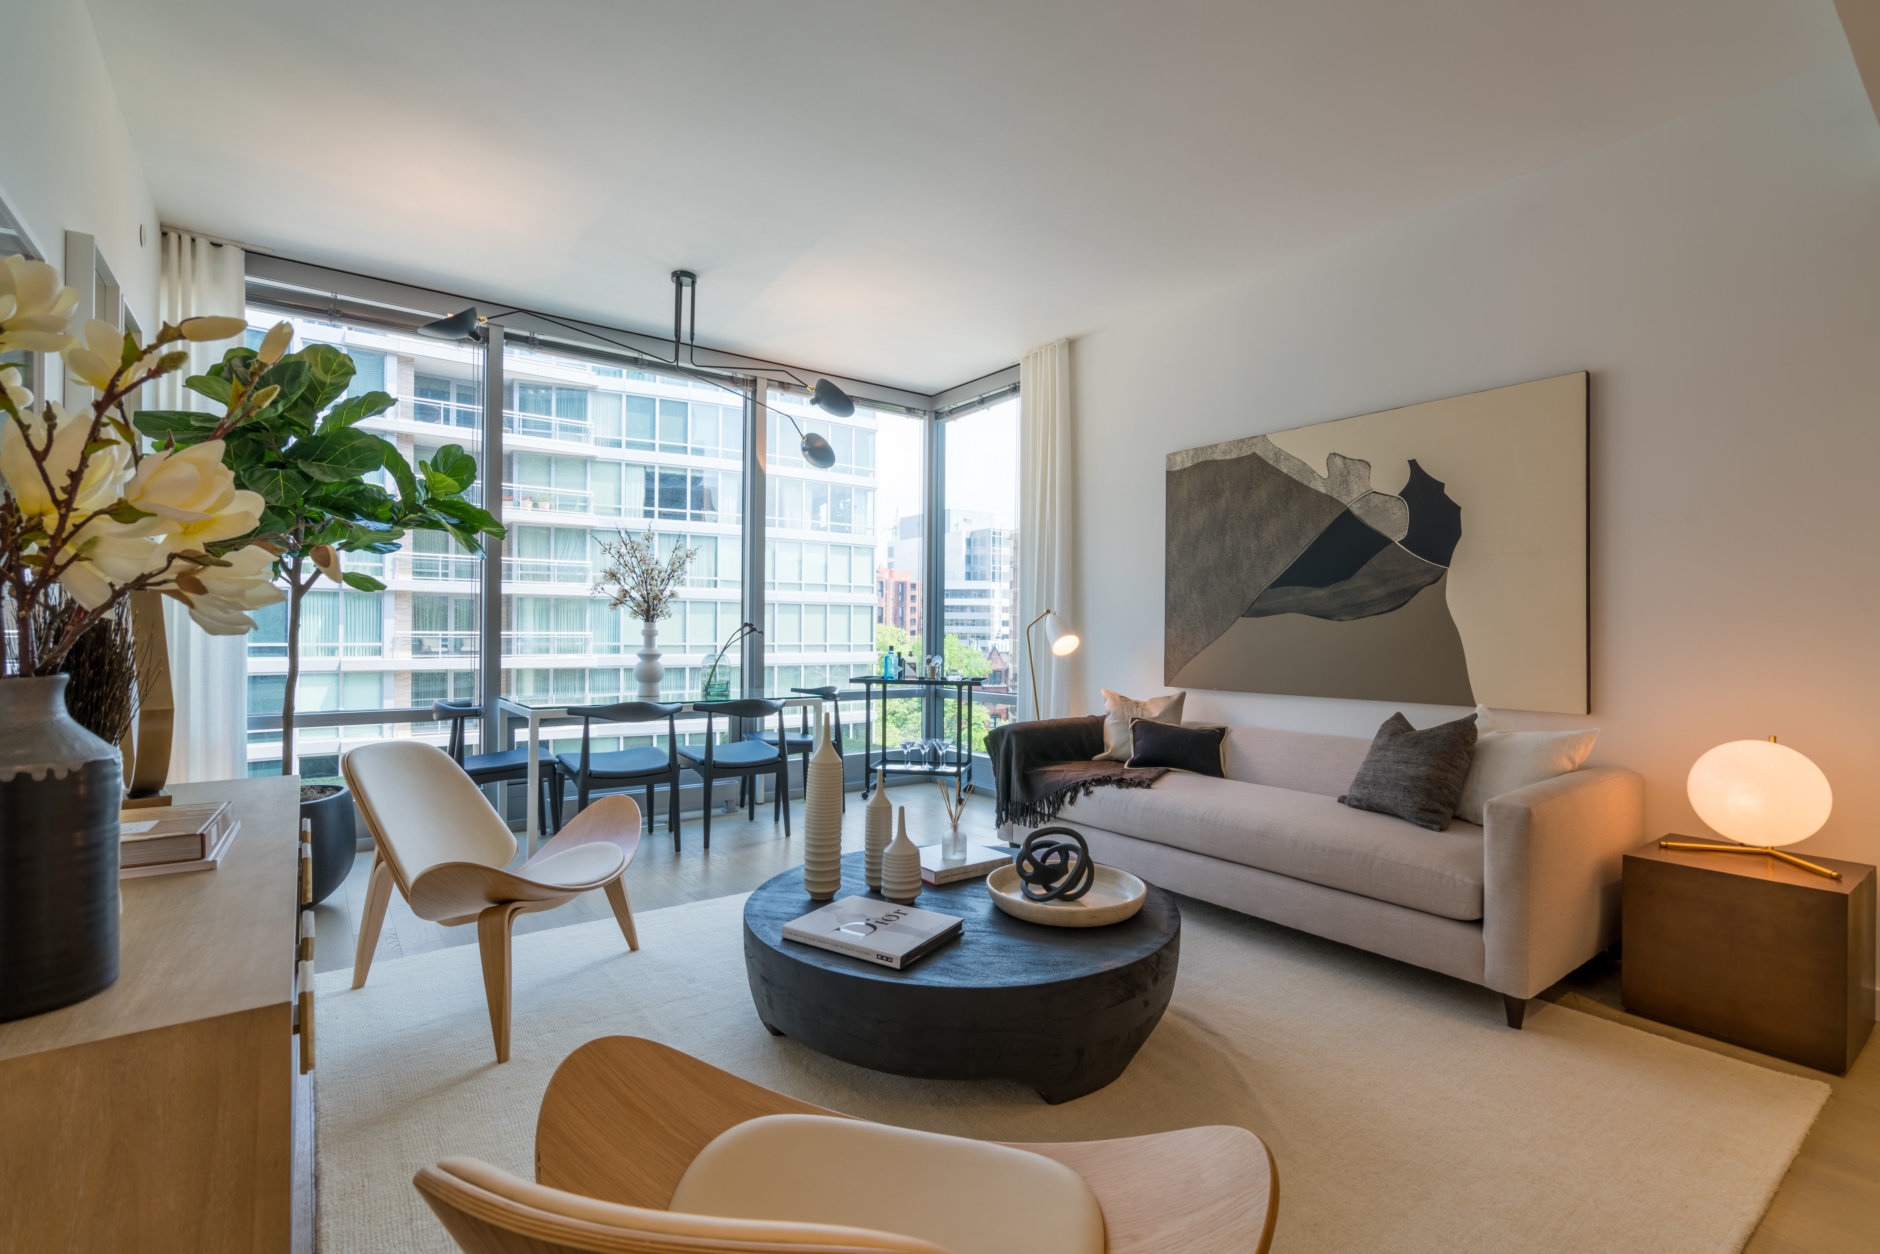 A resident manager also coordinates package delivery directly to apartments via its concierge team, dry cleaning delivery and assistance carrying groceries or other items from the lobby to apartments. (Courtesy Eastbanc)